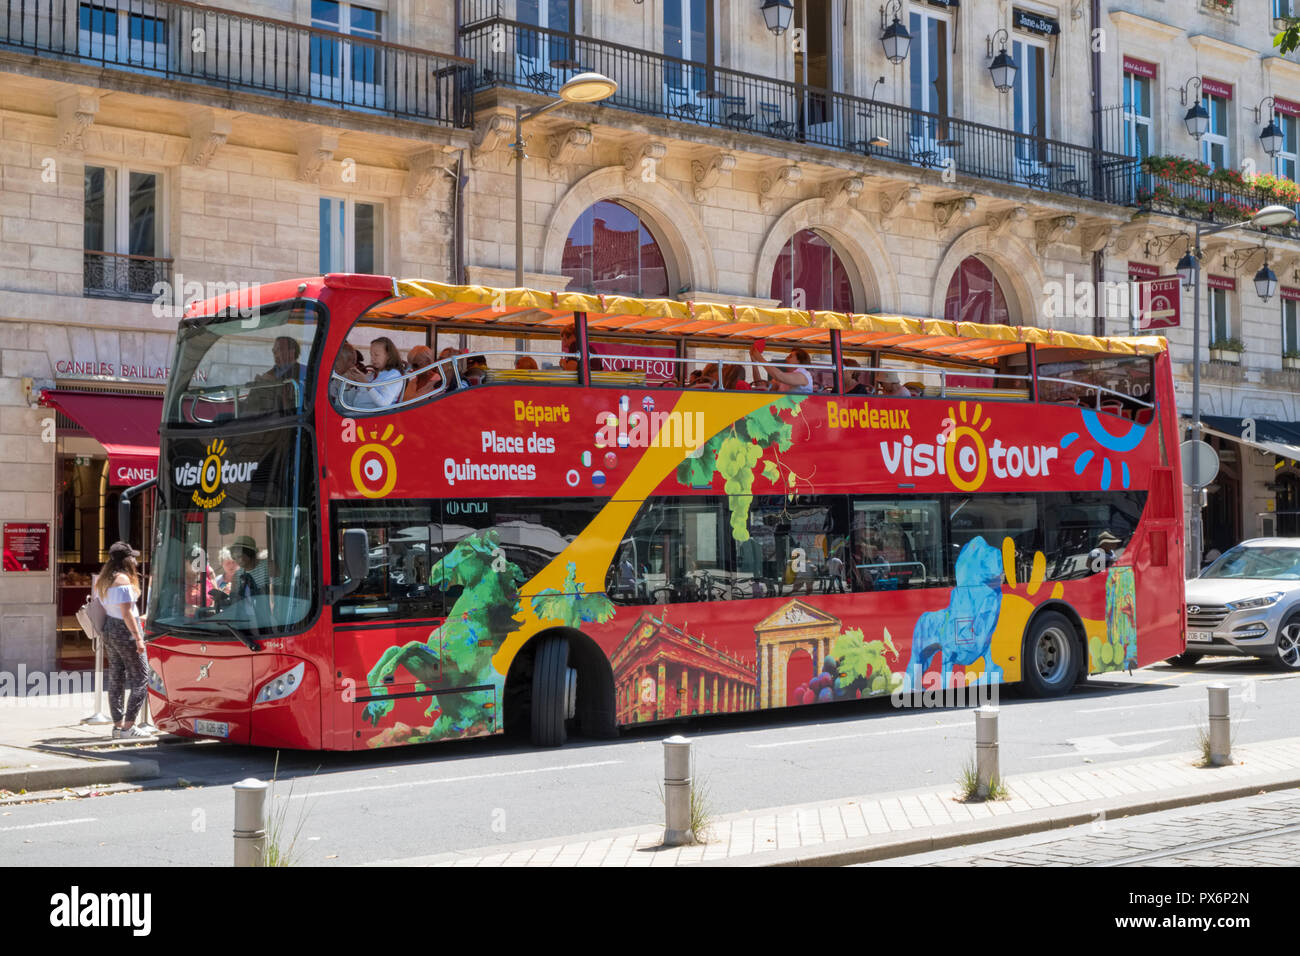 Tourist sightseeing bus in Bordeaux, France, Europe - Stock Image